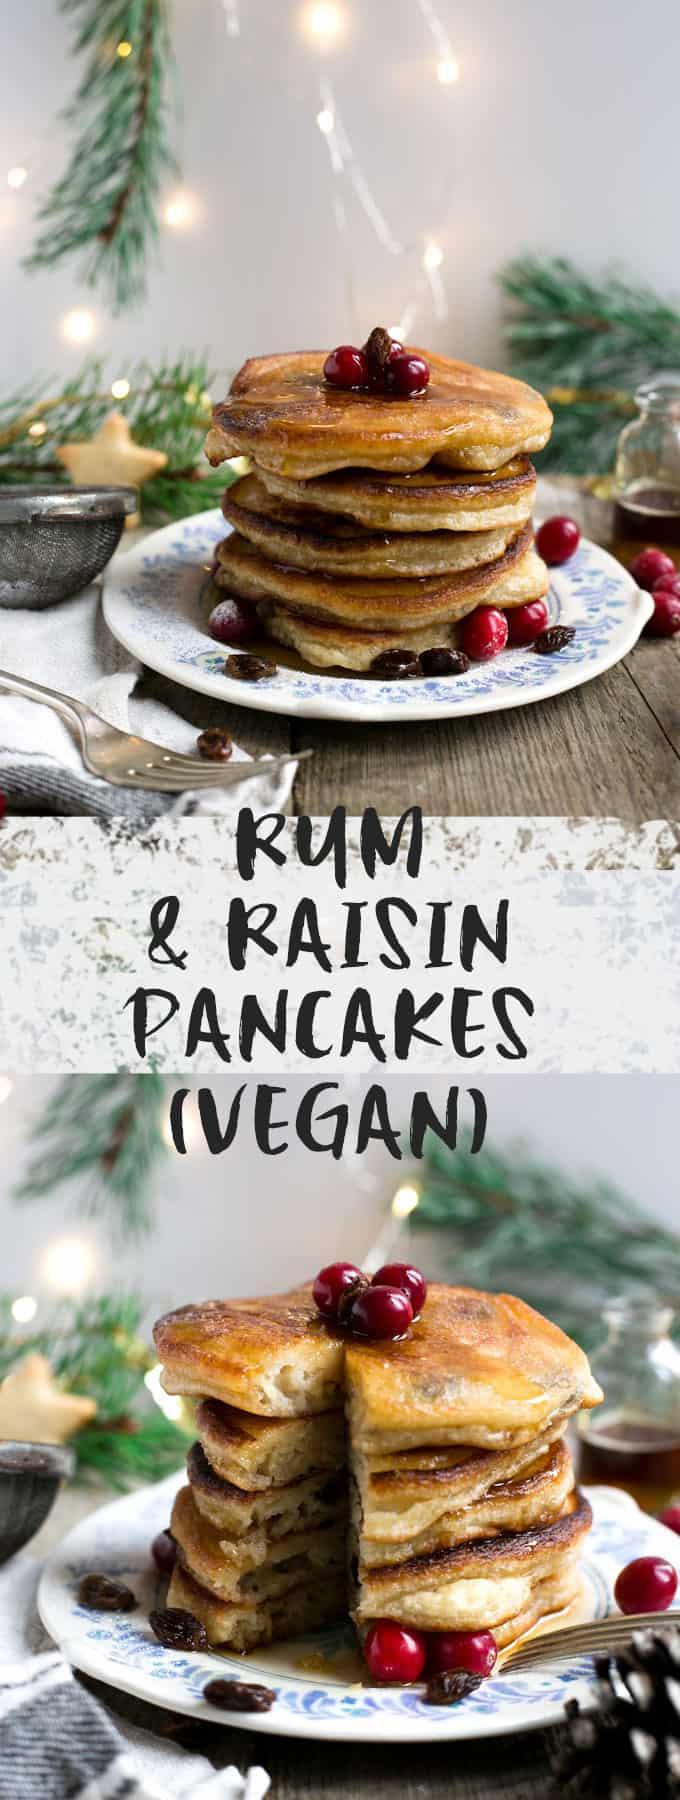 Rum & raisin pancakes, soft, fluffy and festive treat for Christmas morning! #vegan #pancakes #christmas | via @annabanana.co